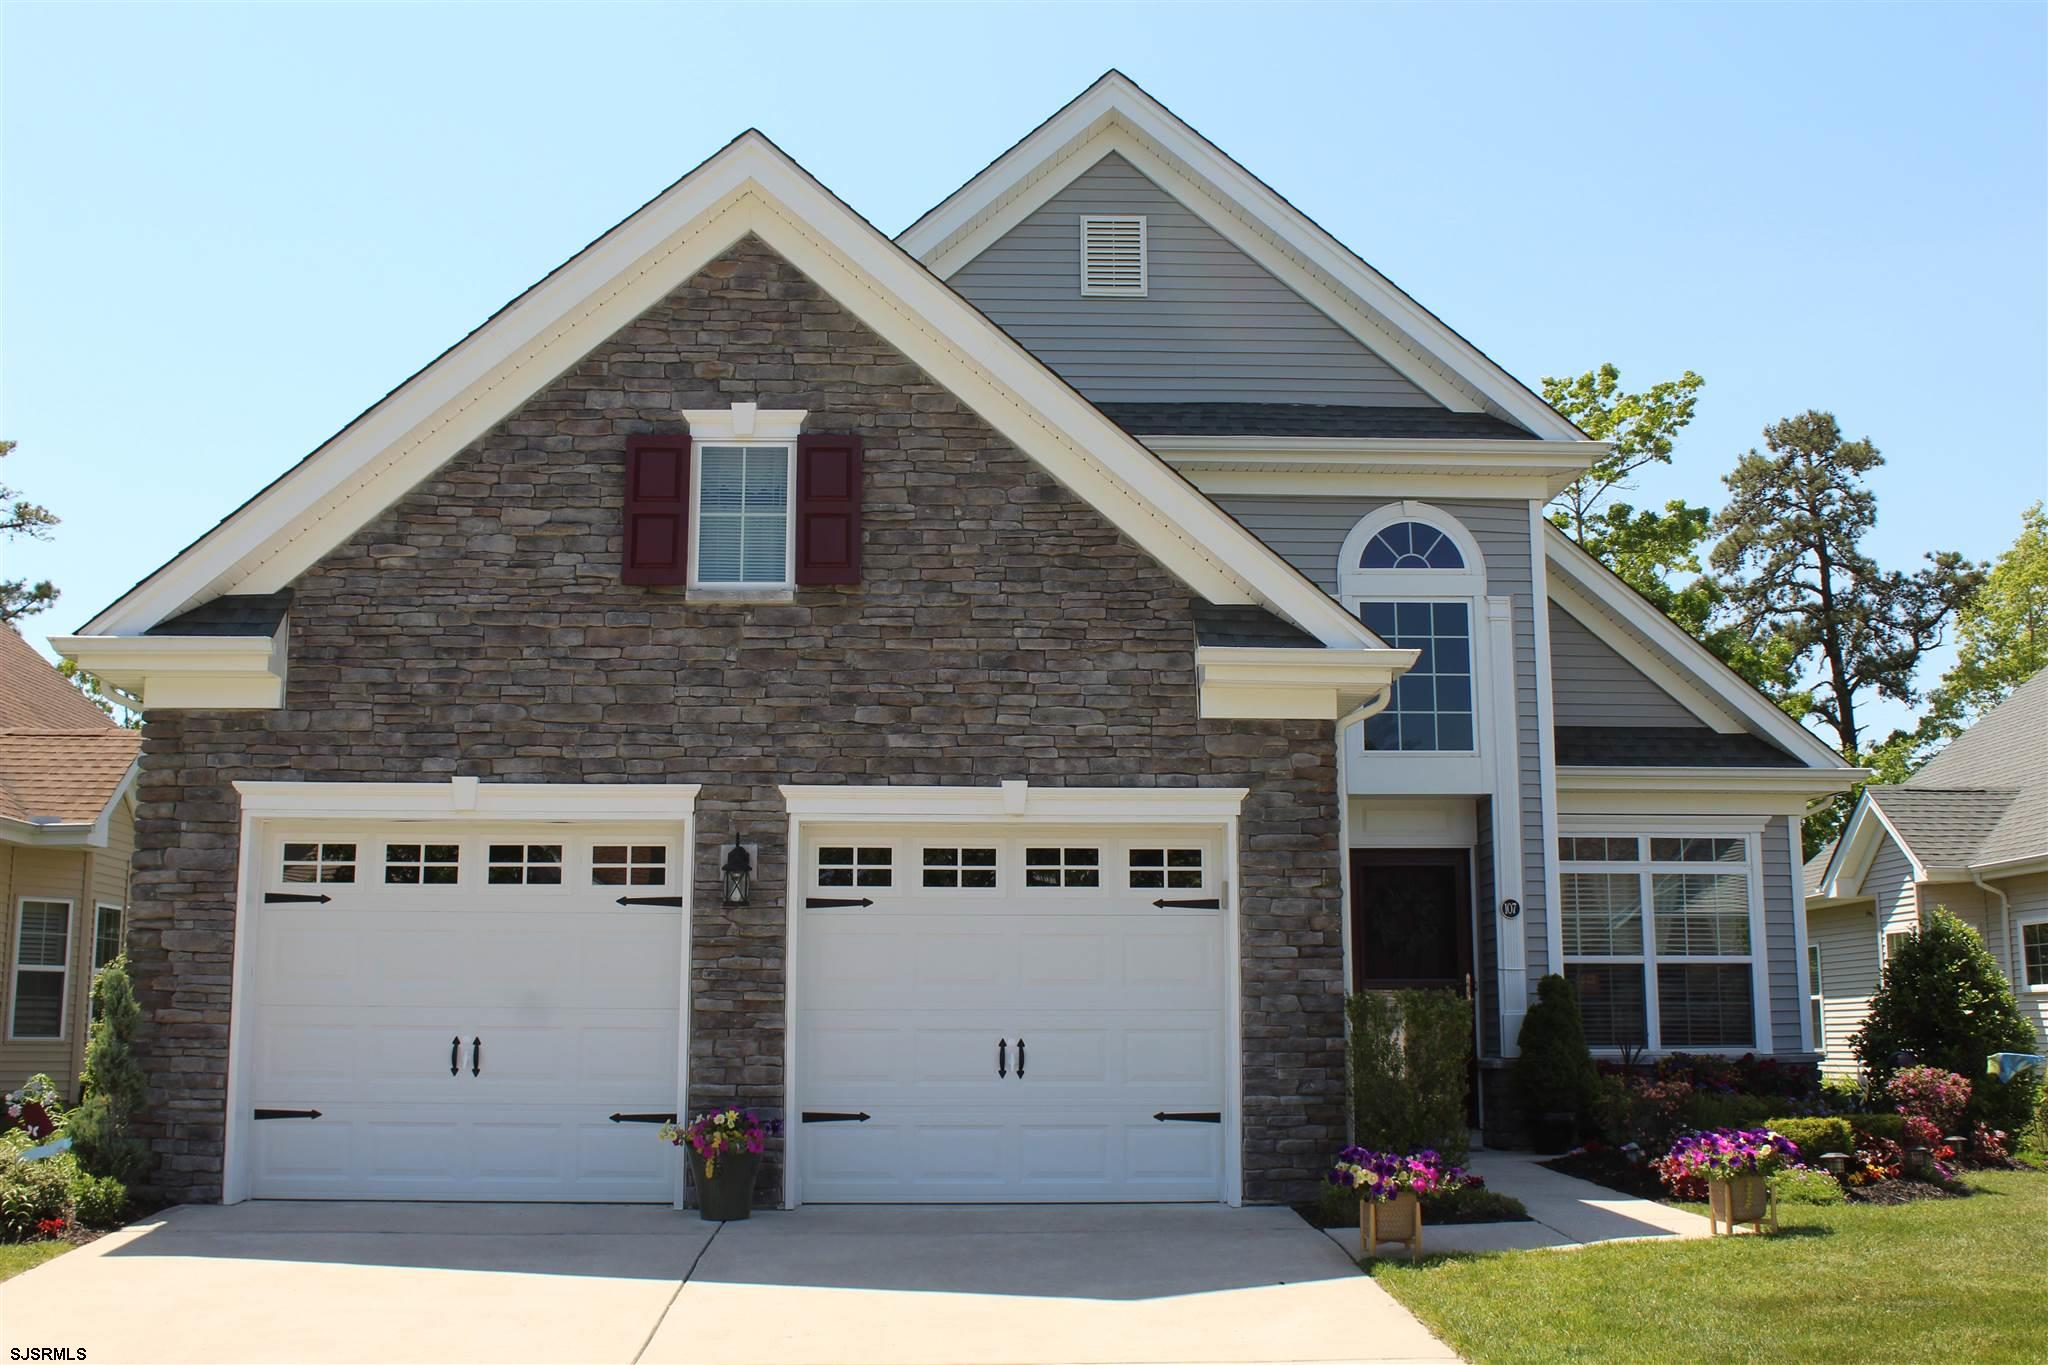 107 BLUEBELL Dr - Picture 1